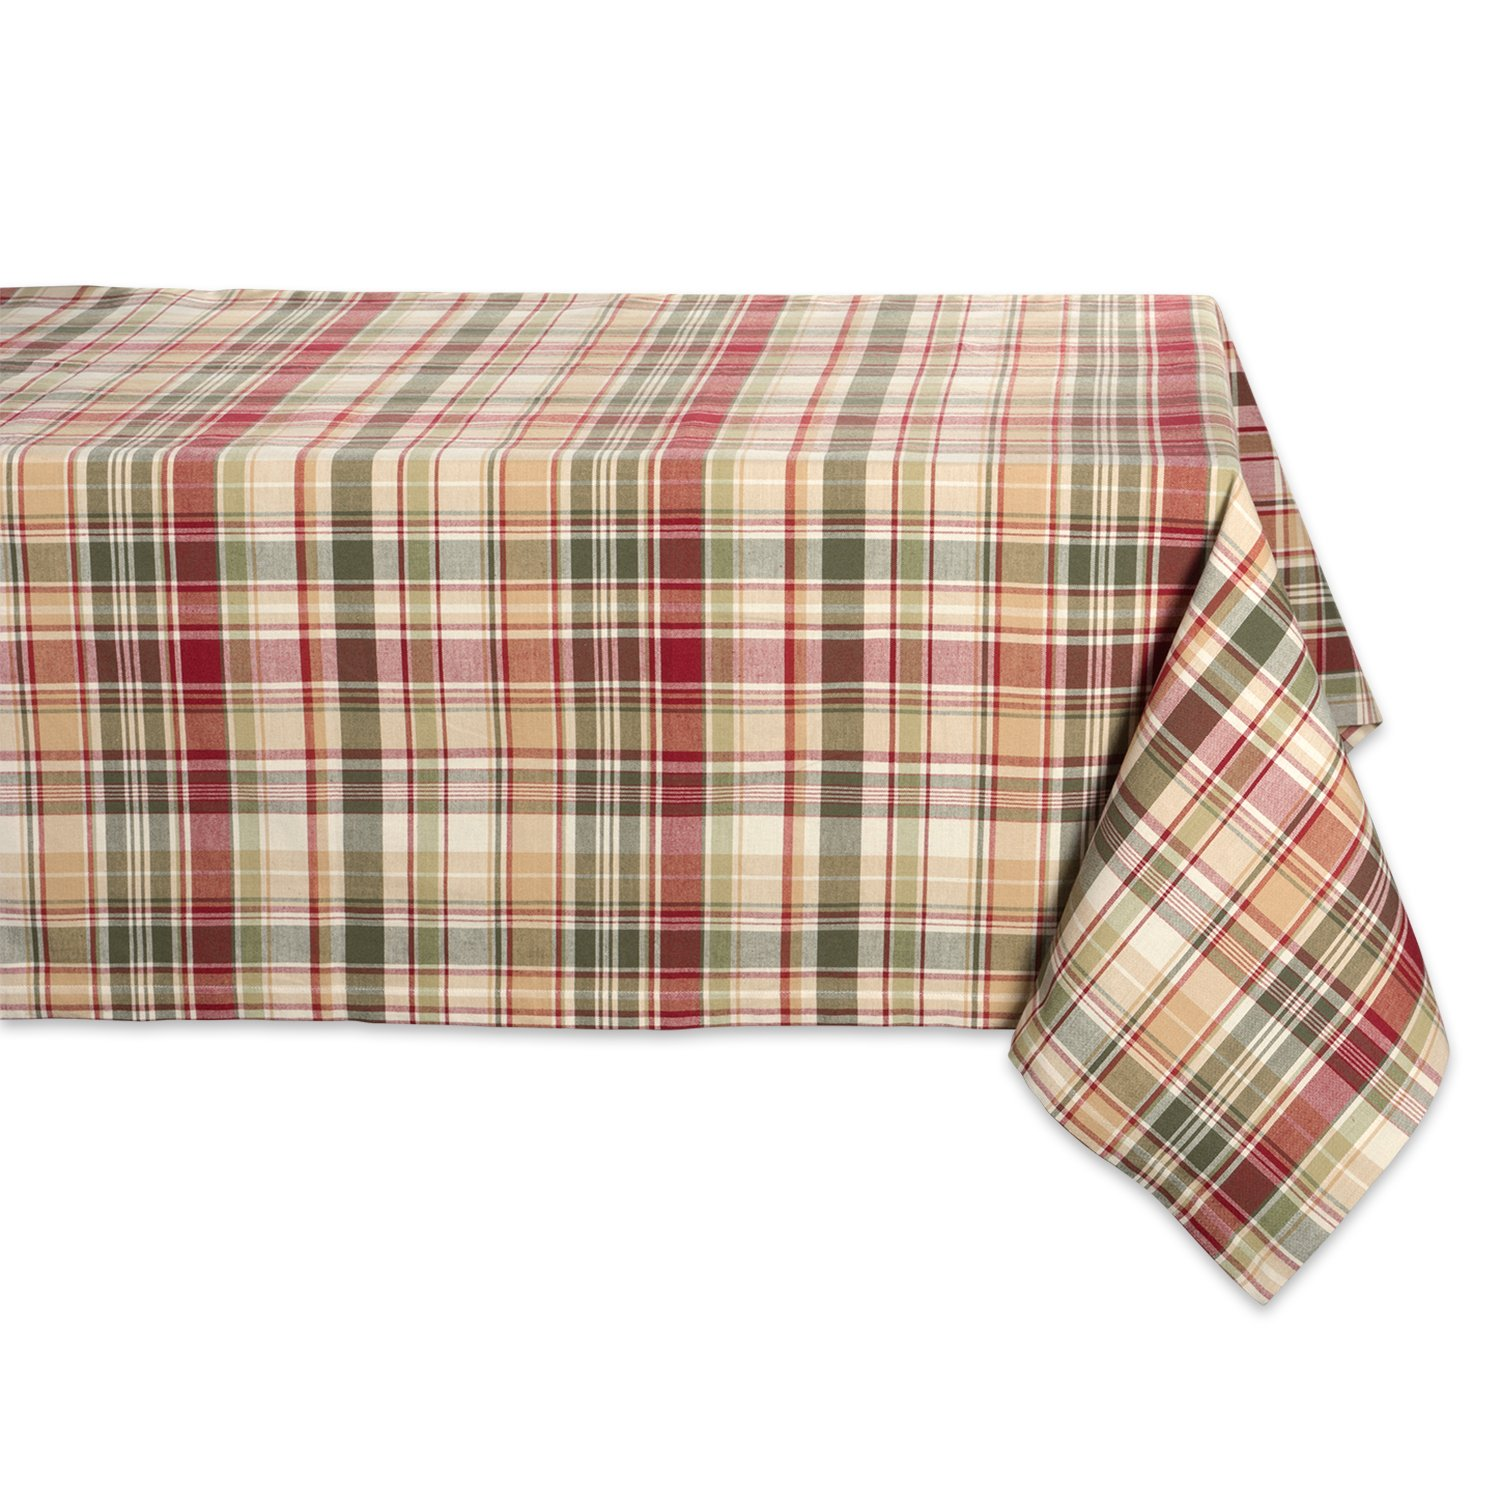 Cabin Plaid Square Tablecloth, 100% Cotton with 1/2'' Hem (60x104'' - Seats 8 to 10) by DII